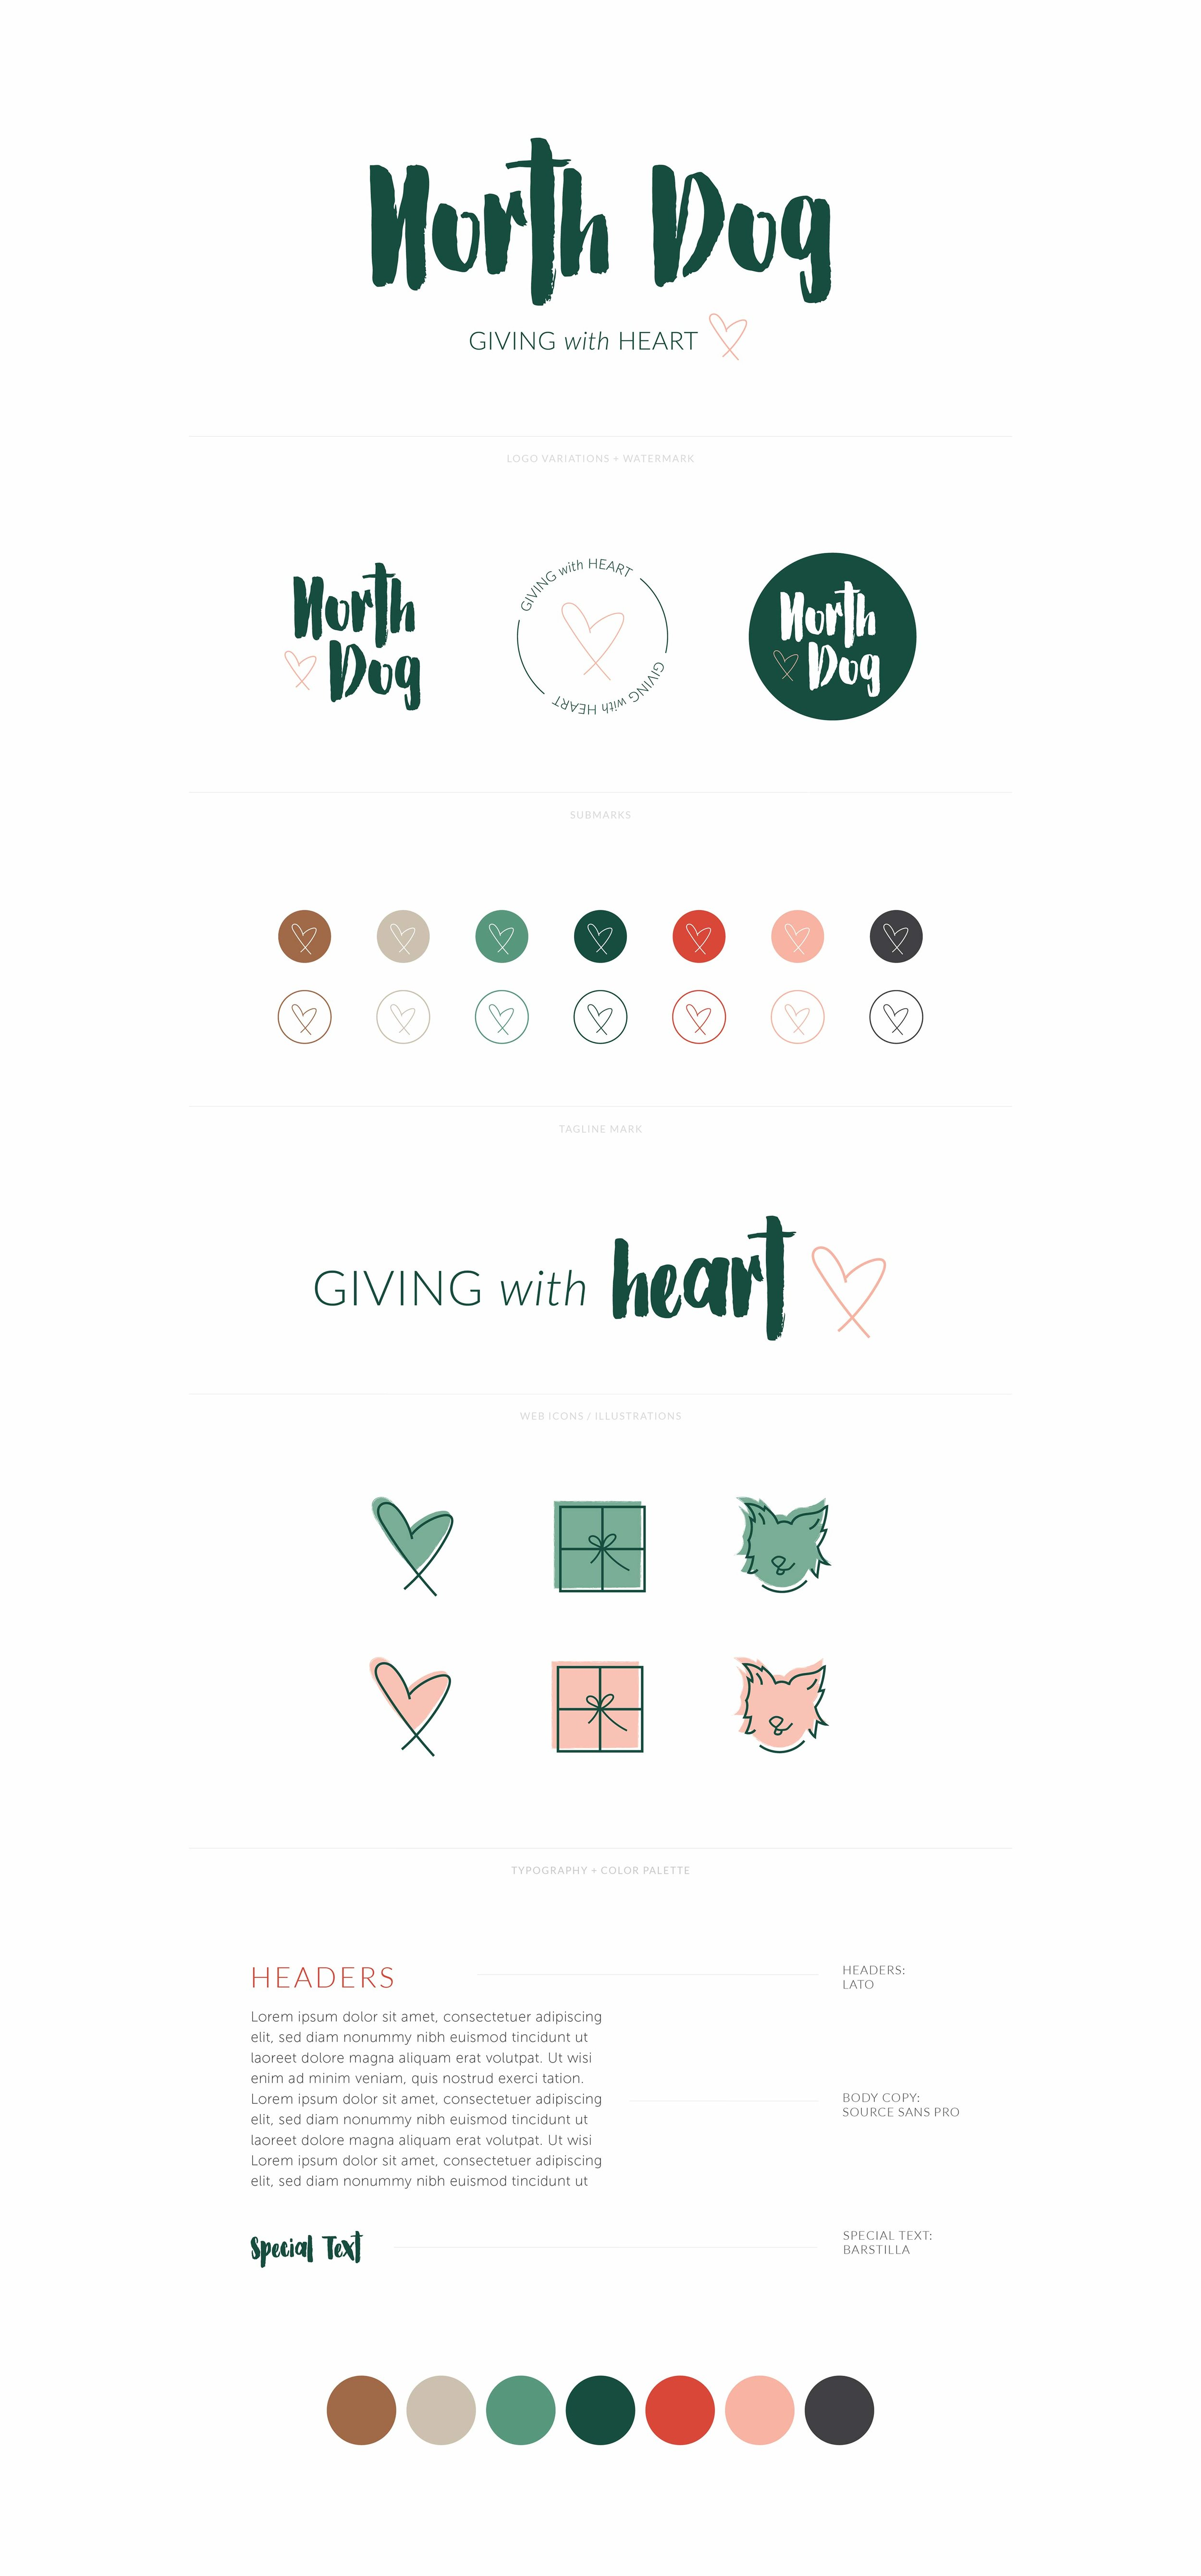 North Dog, Giving with Heart | Fun, Adventurous, Welcoming Logo, Watermark, Favicon, Tagline, Illustrations, Font Styling and Color Palette  | Branding by AllieMarie Design